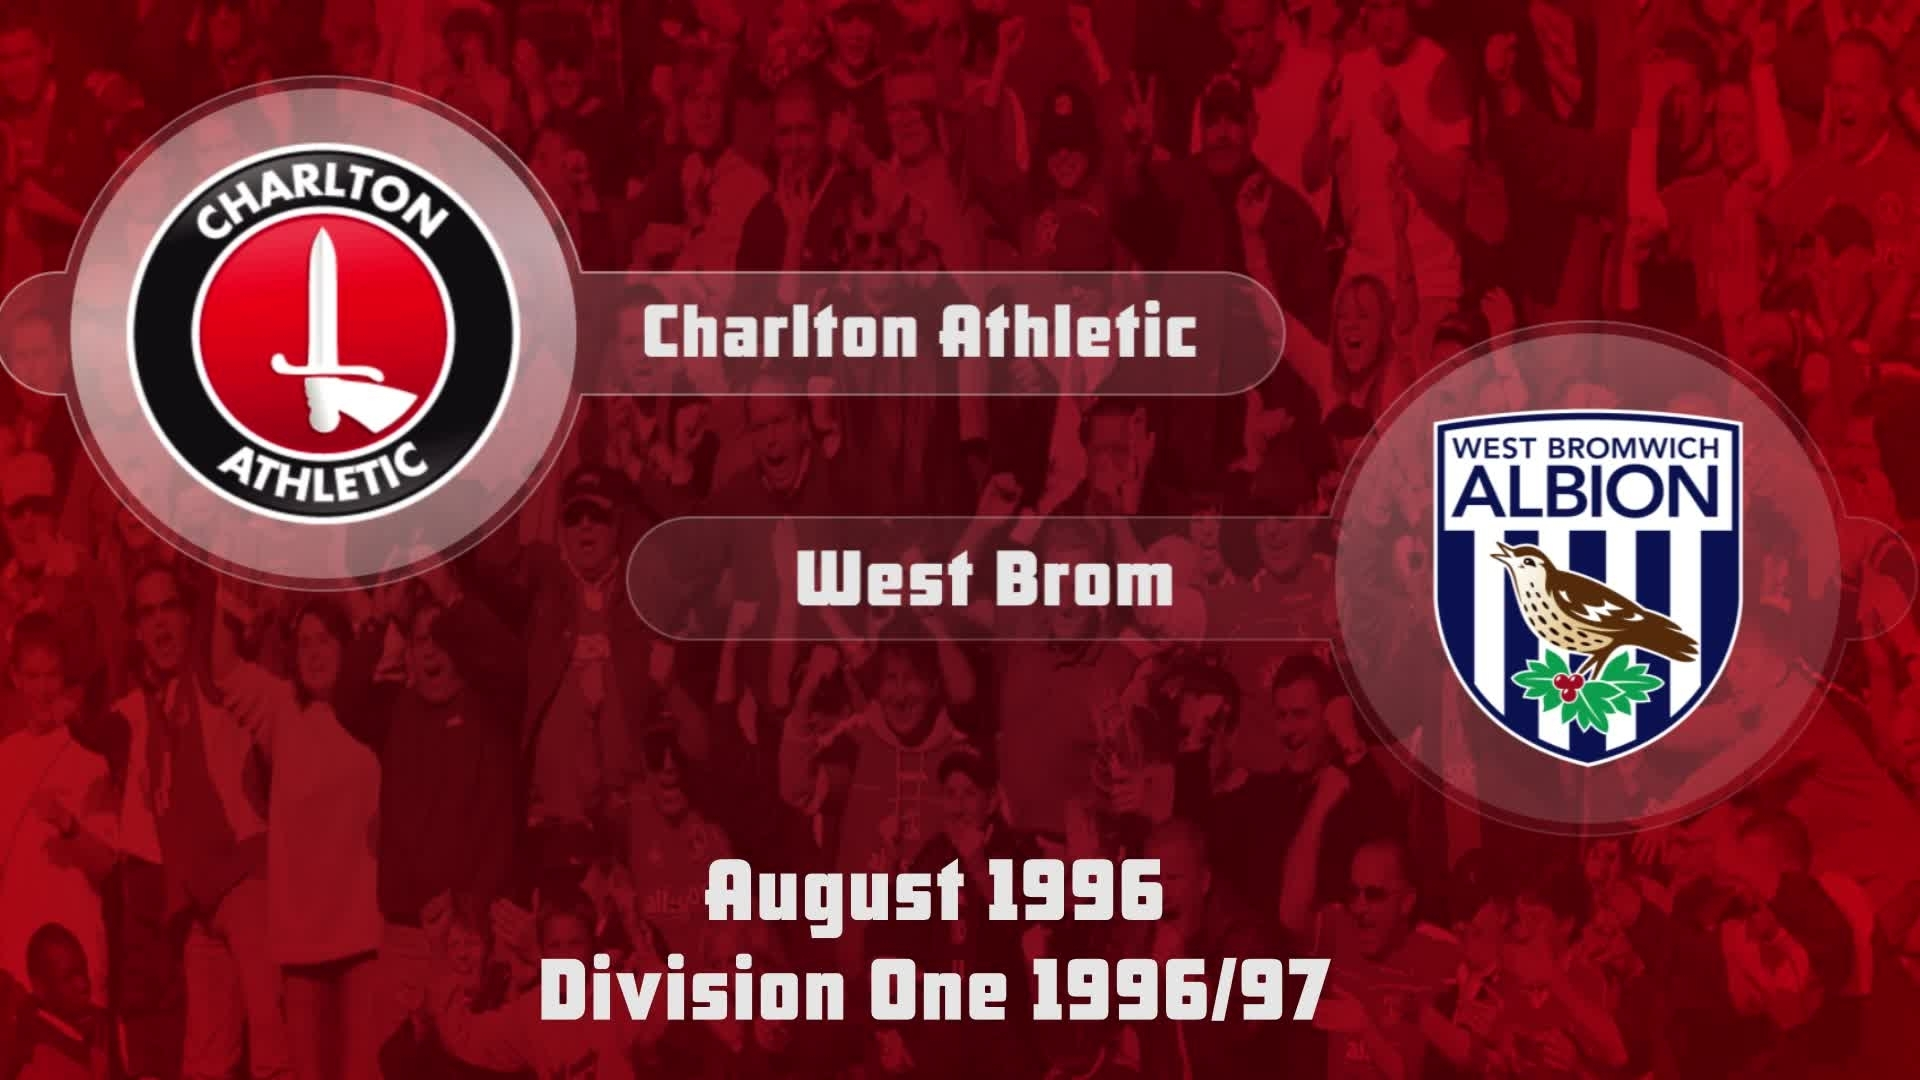 02 HIGHLIGHTS | Charlton 1 West Brom 1 (Aug 1996)